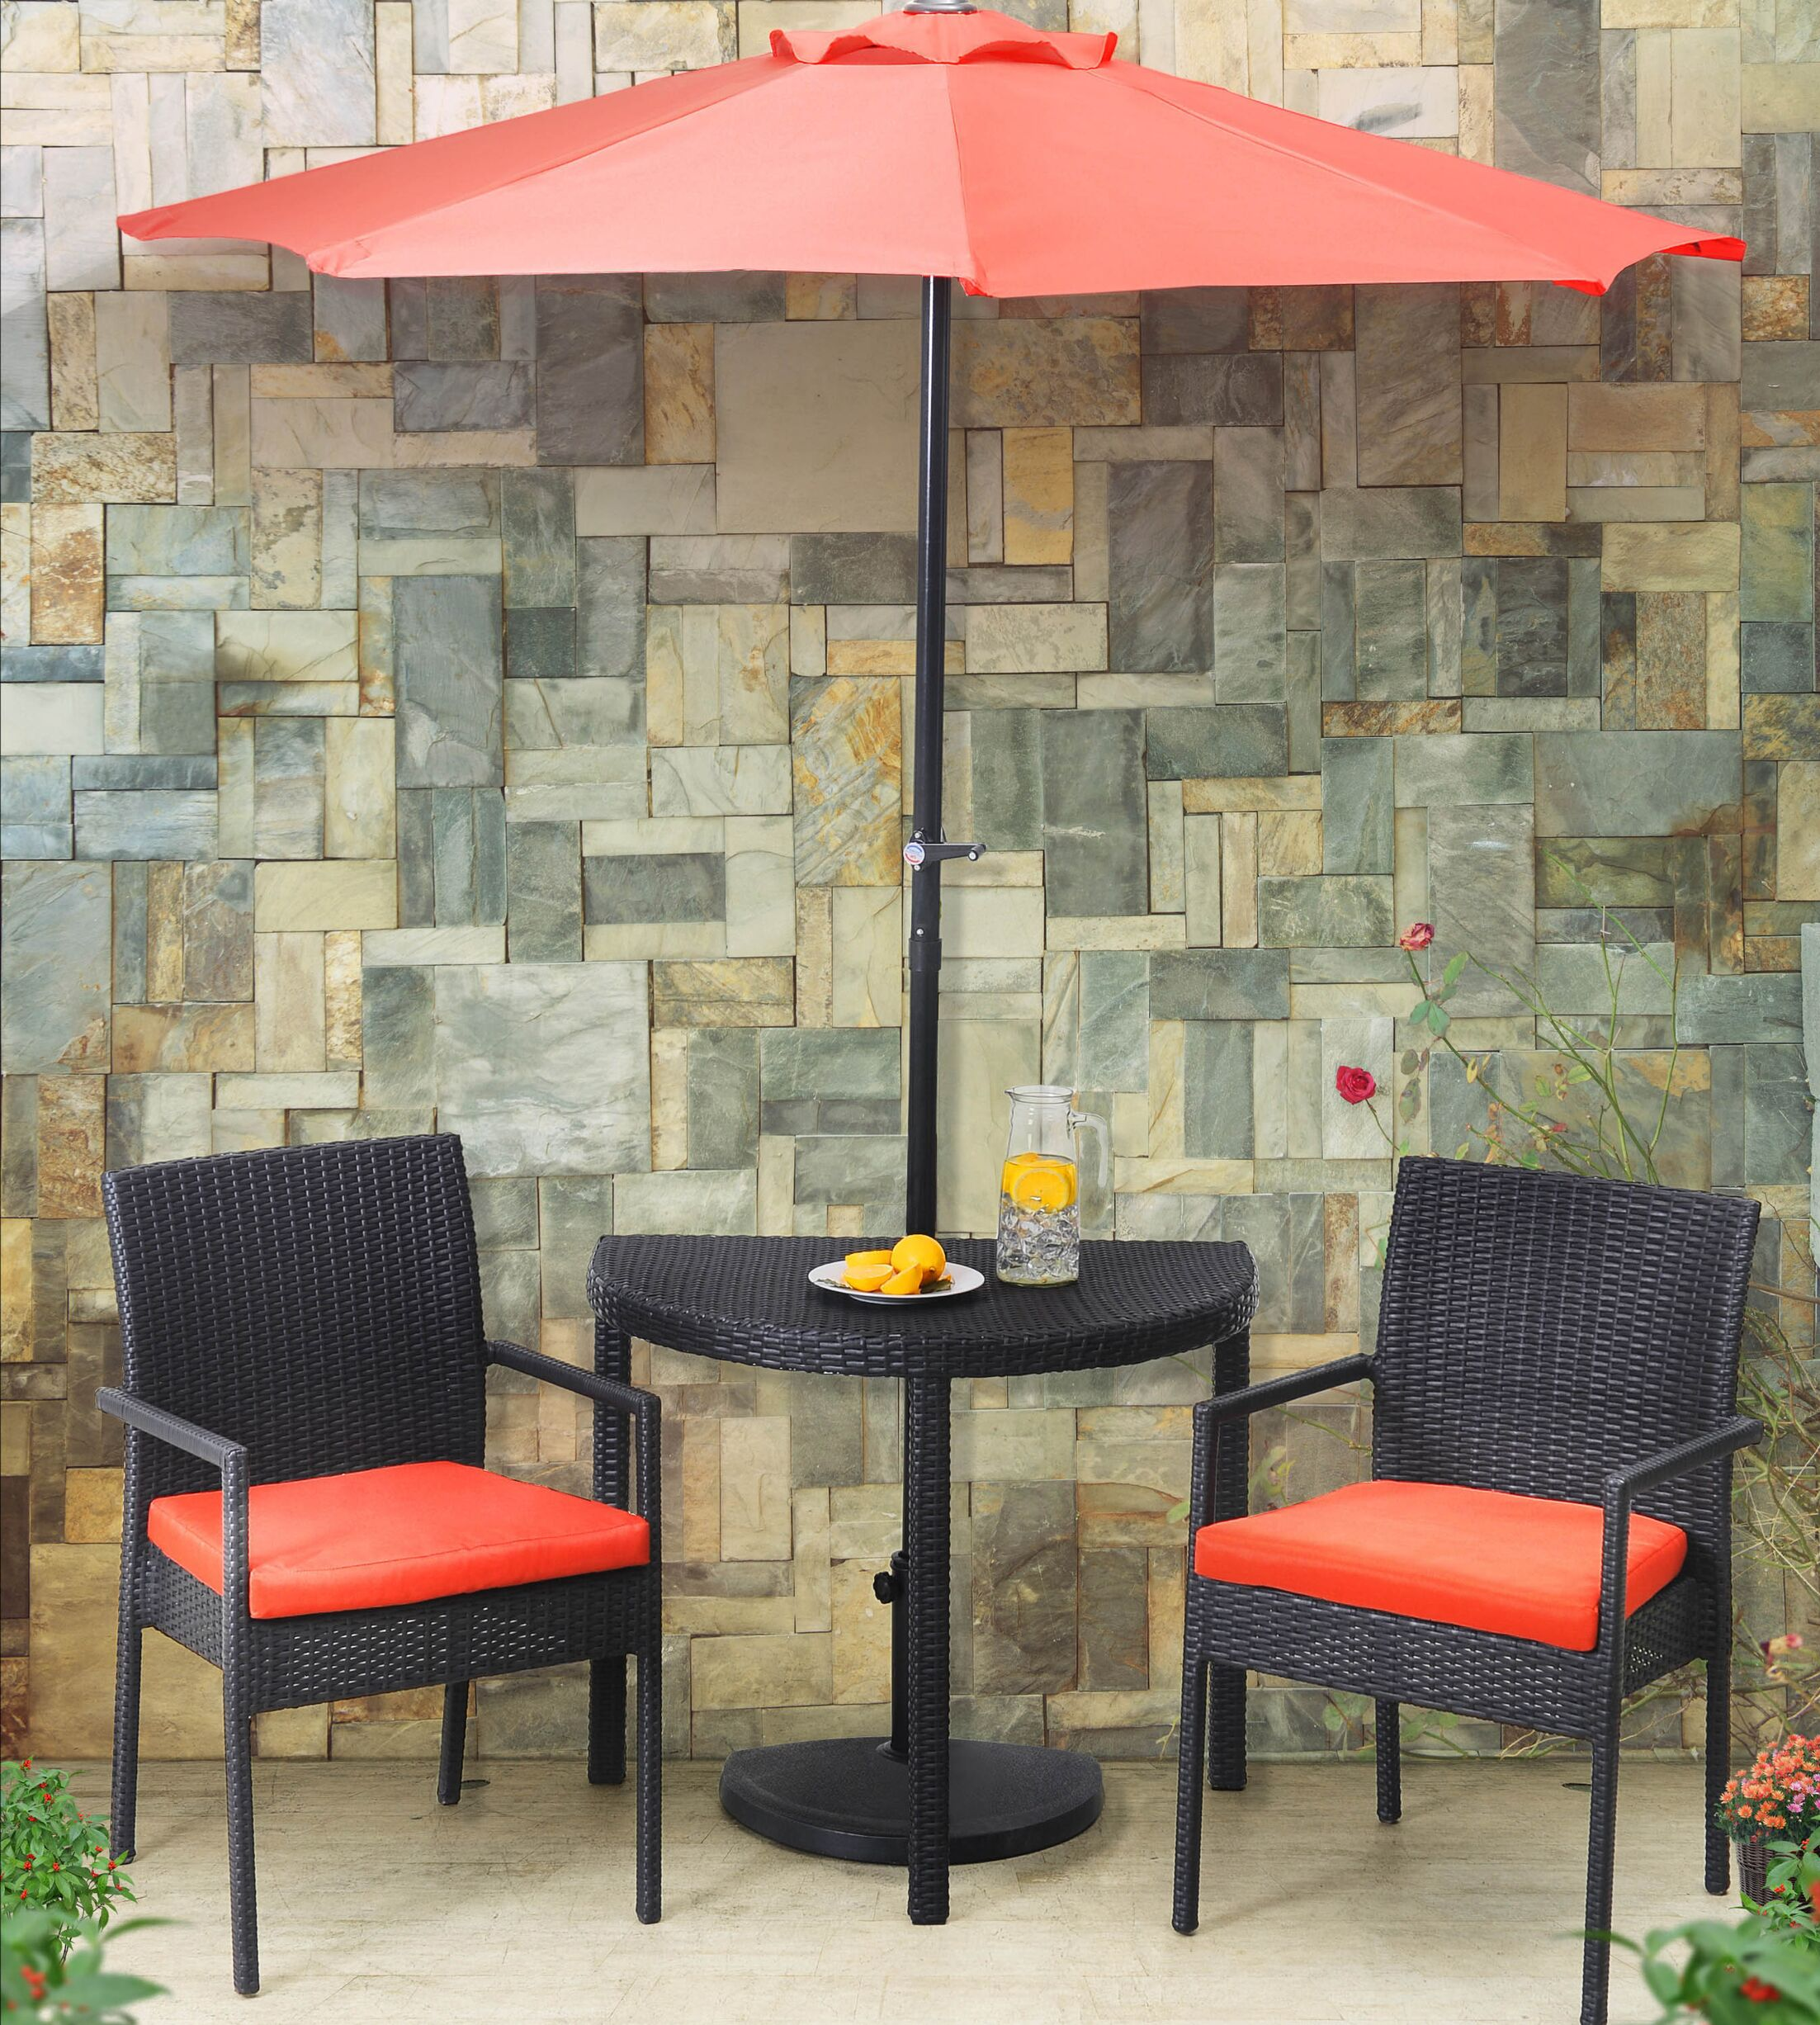 Sibley Balcony 3 Piece Bistro Set with Cushions and Umbrella Cushion Color: Coral